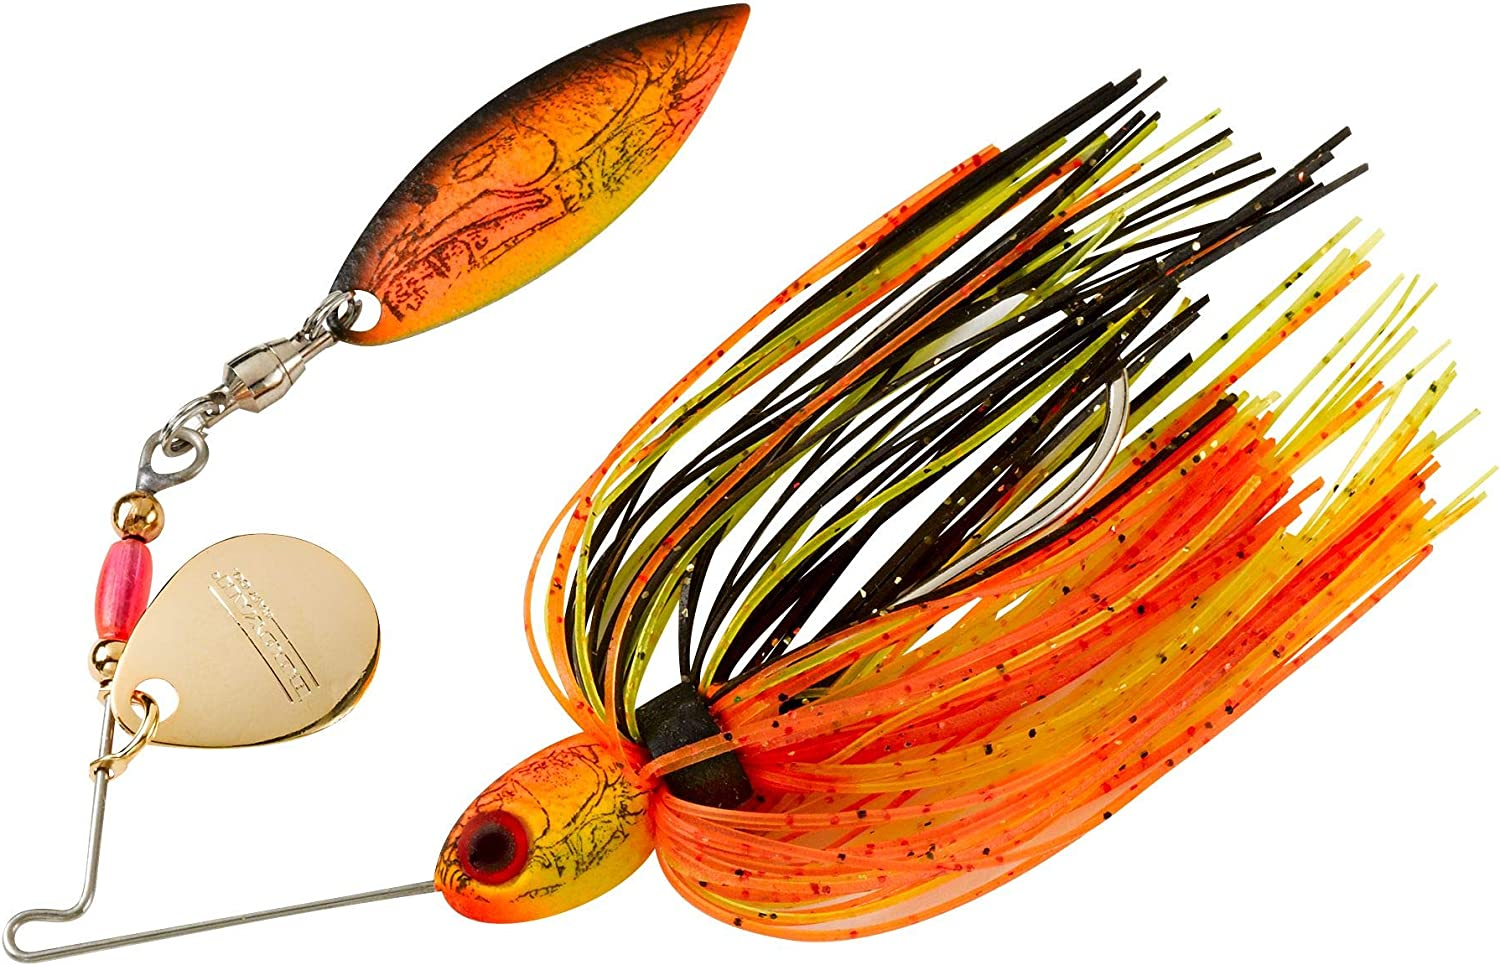 BOOYAH Pond Magic - Sunrise Craw - 3/16 oz - #0 Colorado/#3 Willow, Model:BYPM36715 : Fishing Bait Traps : Sports & Outdoors